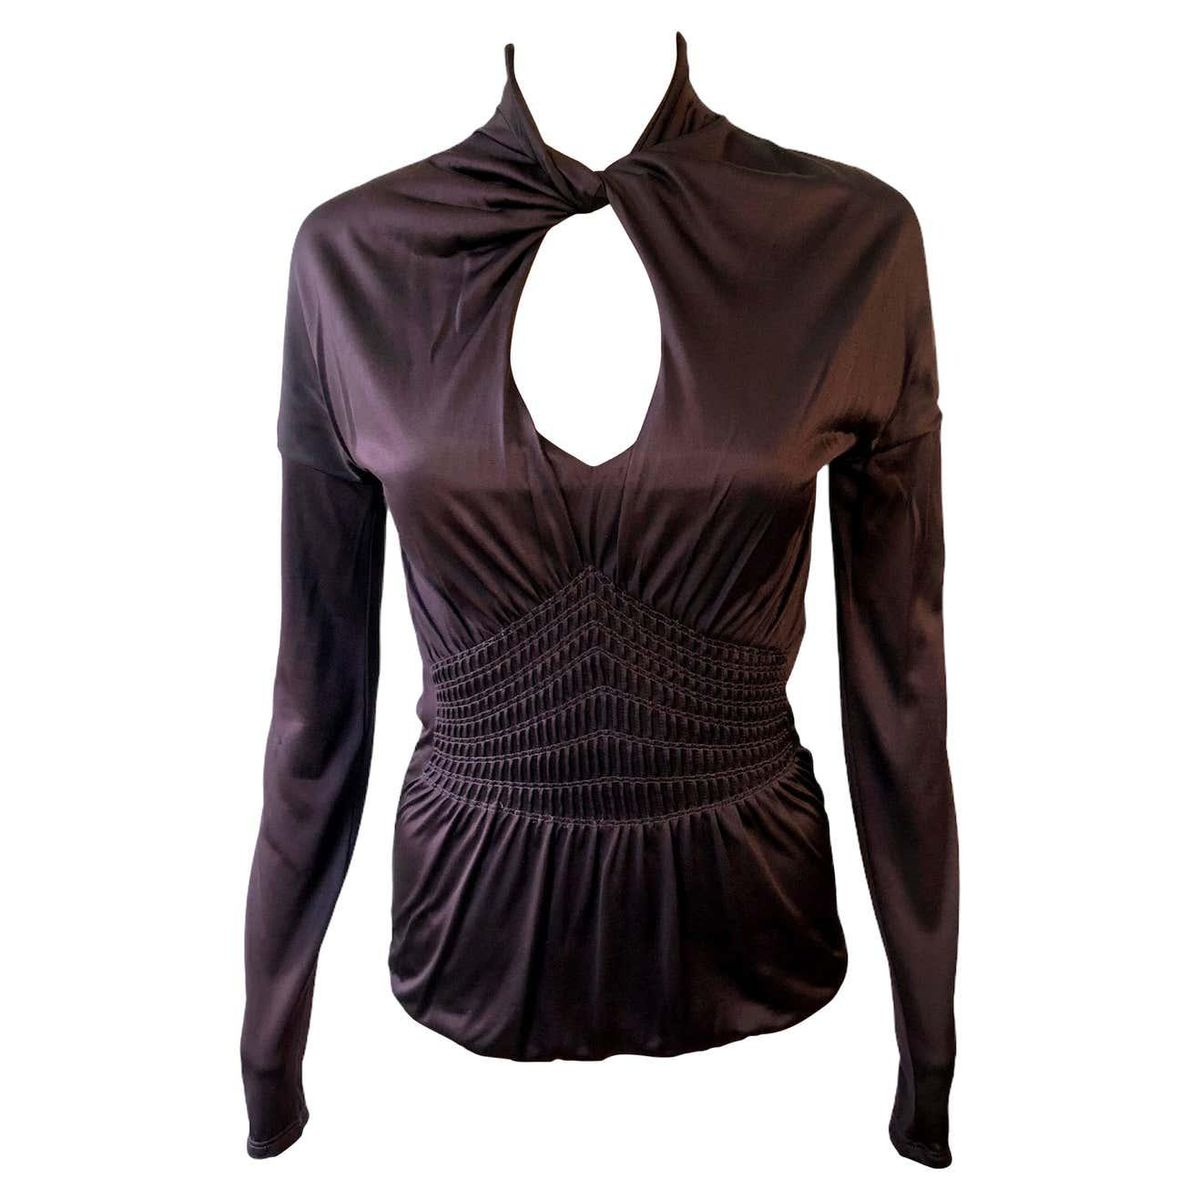 Tom Ford Keyhole Cutout Blouse Top